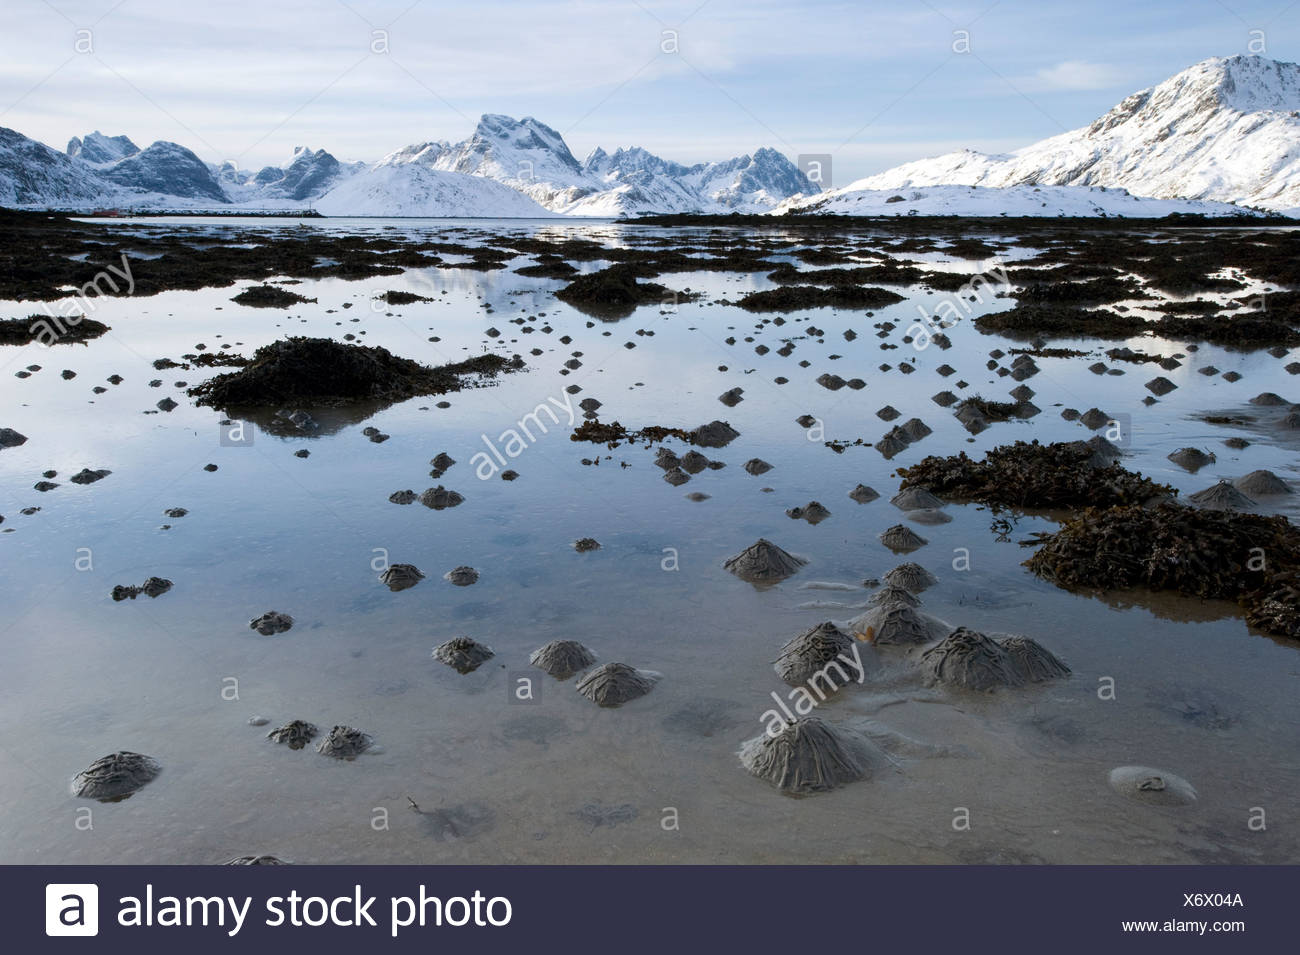 Sand piles made by Lugworms or Sandworms (Arenicola marina) on the Lofoten Islands, Nordland, Norway, Europe - Stock Image